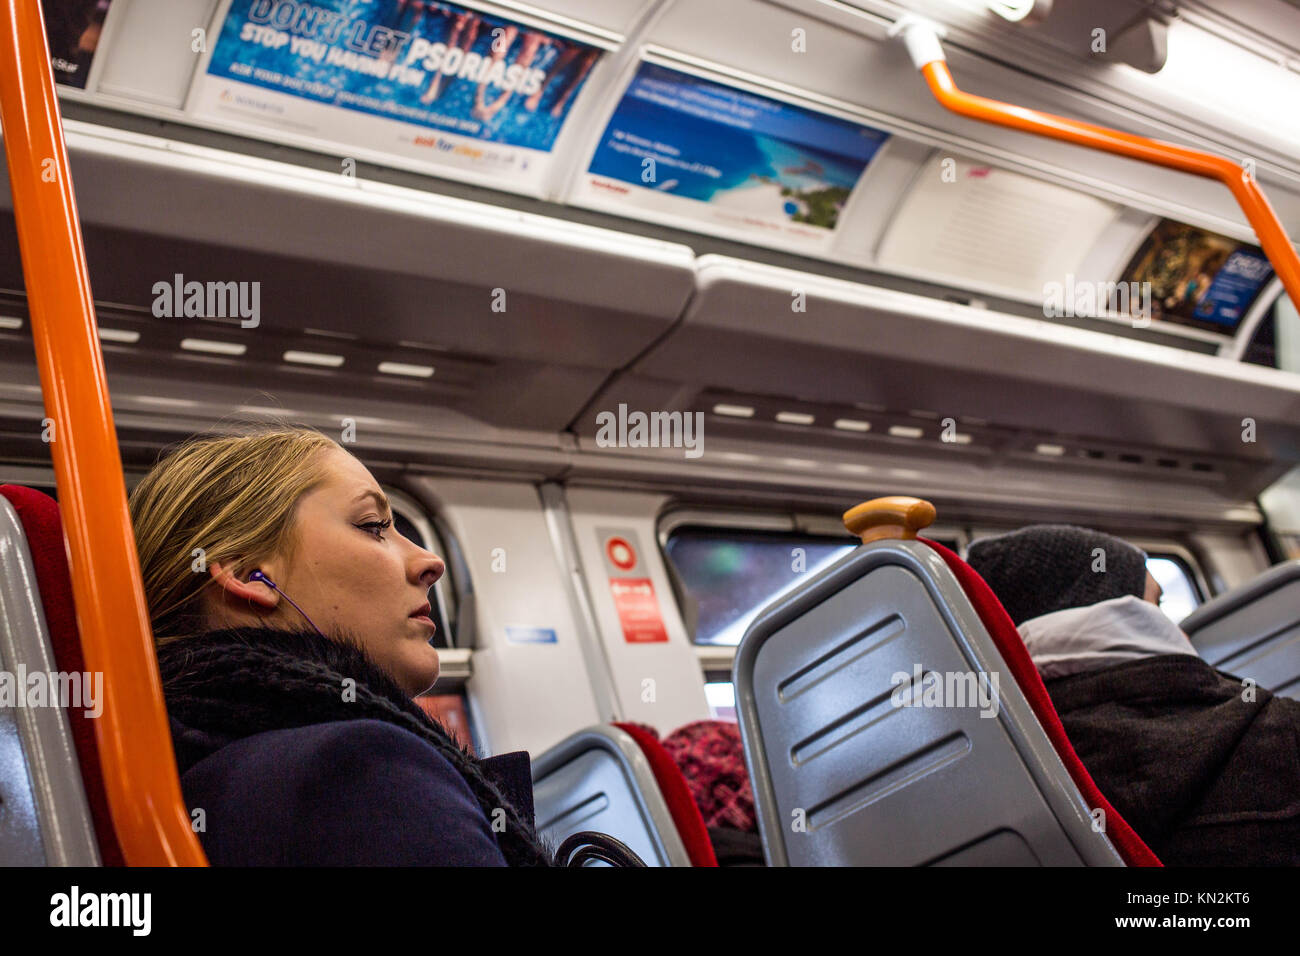 Candid Portrait of A Commuter Traveling on a Train In England - Stock Image